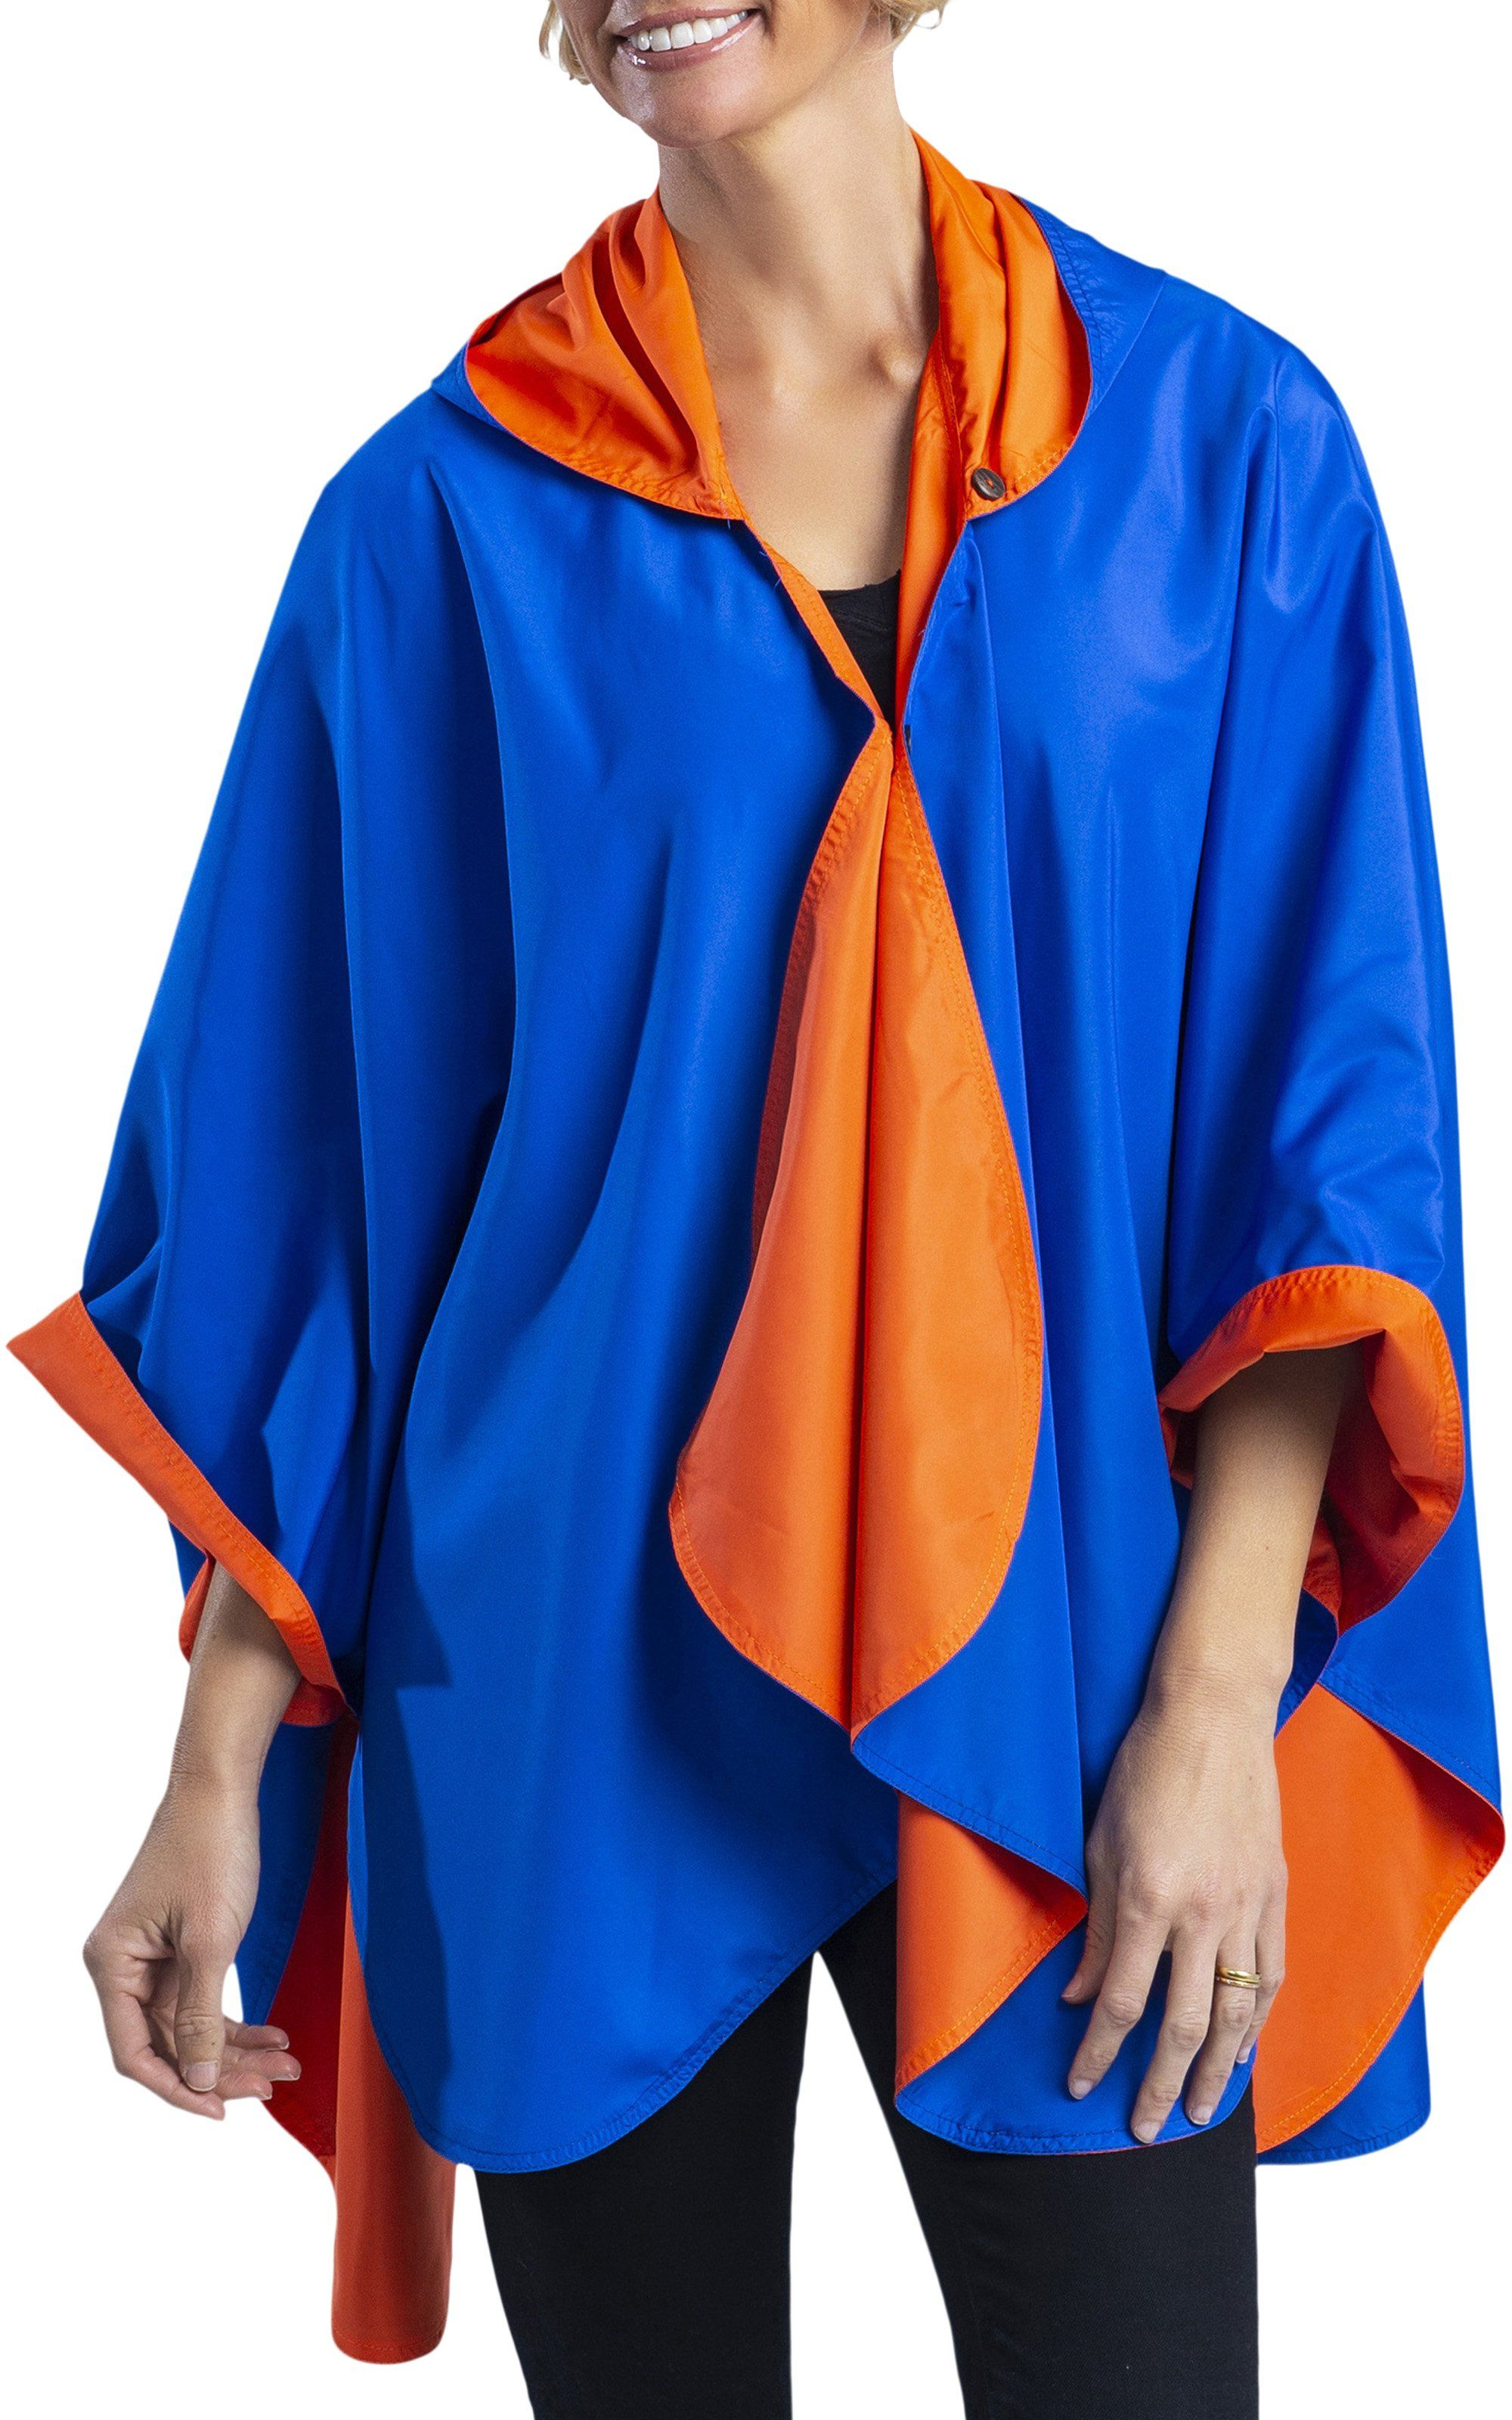 Woman wearing a Royal Blue & Orange Wind & Rainproof Cheer Cape with the Royal Blue side out, revealing the Orange print at the lapels,neckline and cuffs